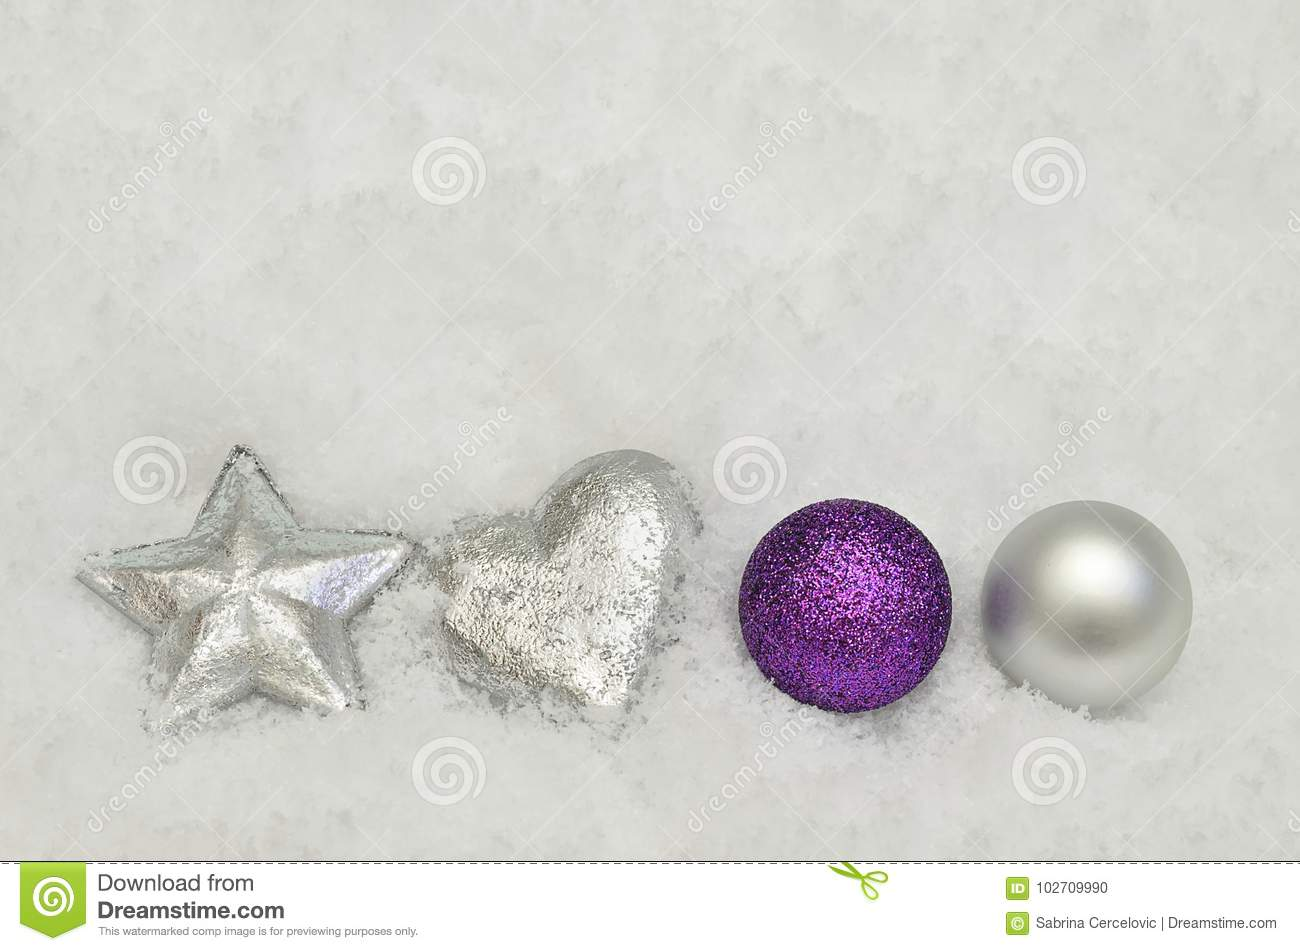 silver and purple christmas tree decorations on snow background